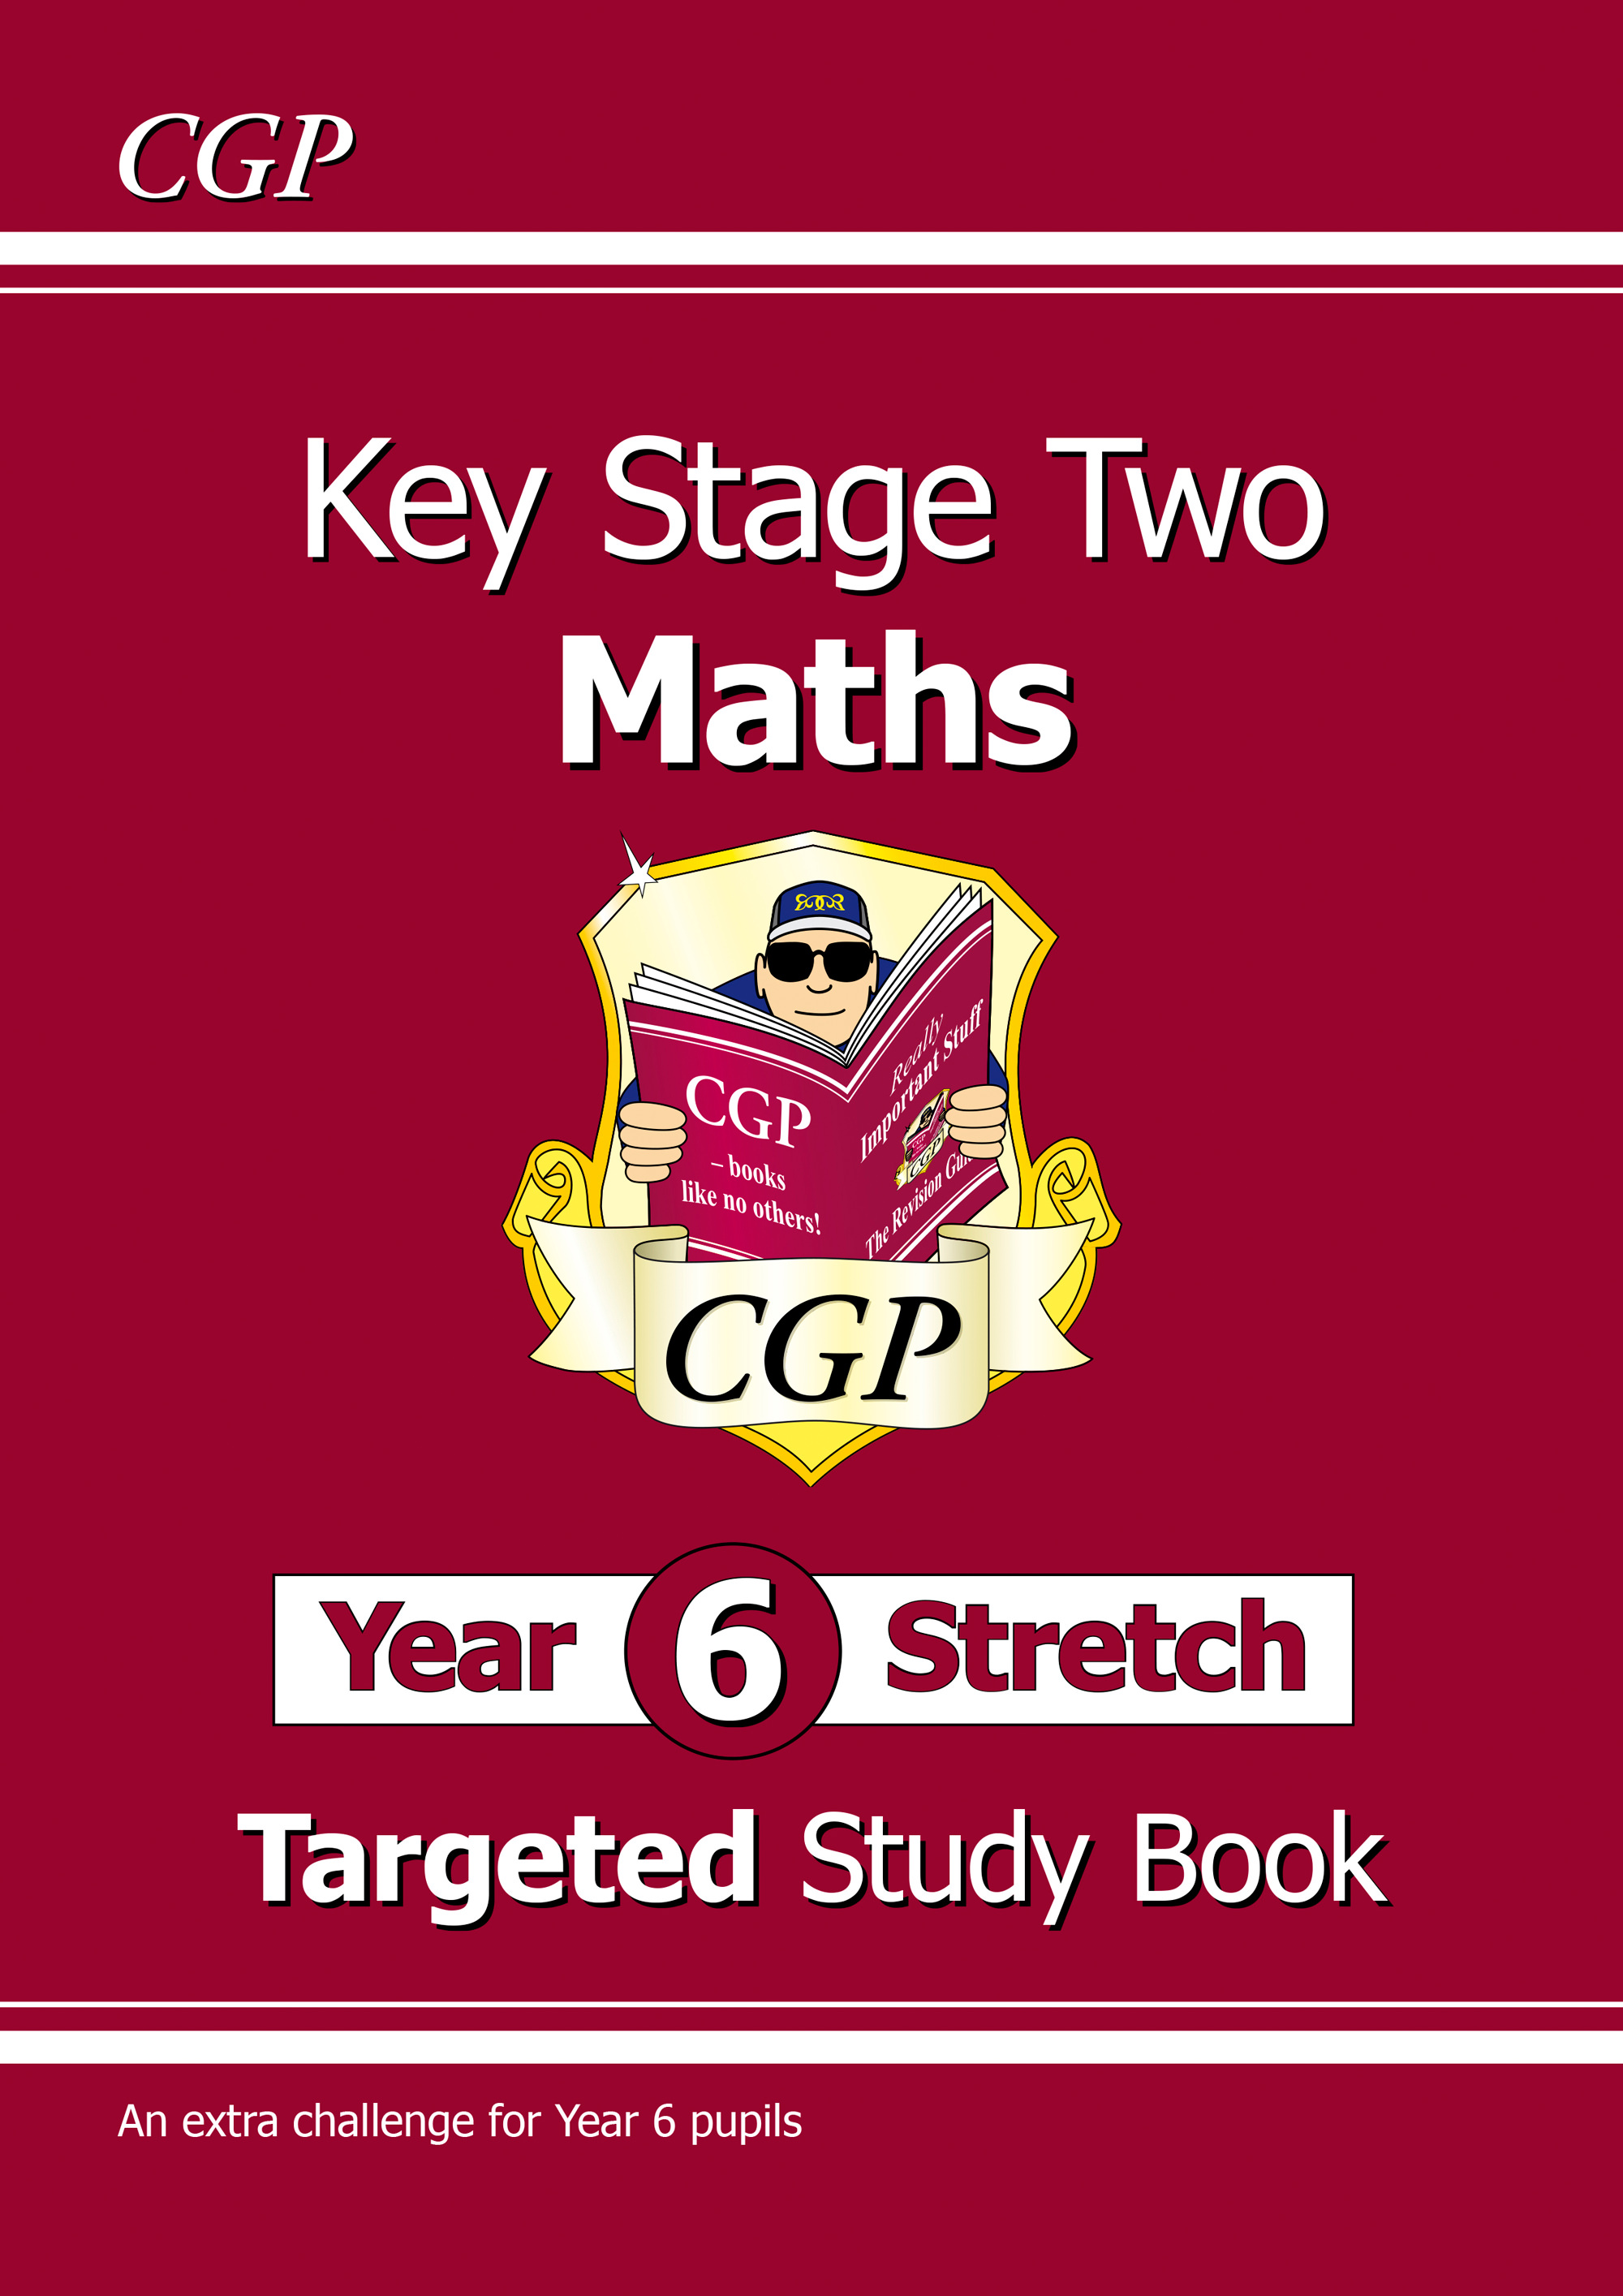 M6HR22DK - KS2 Maths Targeted Study Book: Challenging Maths - Year 6 Stretch